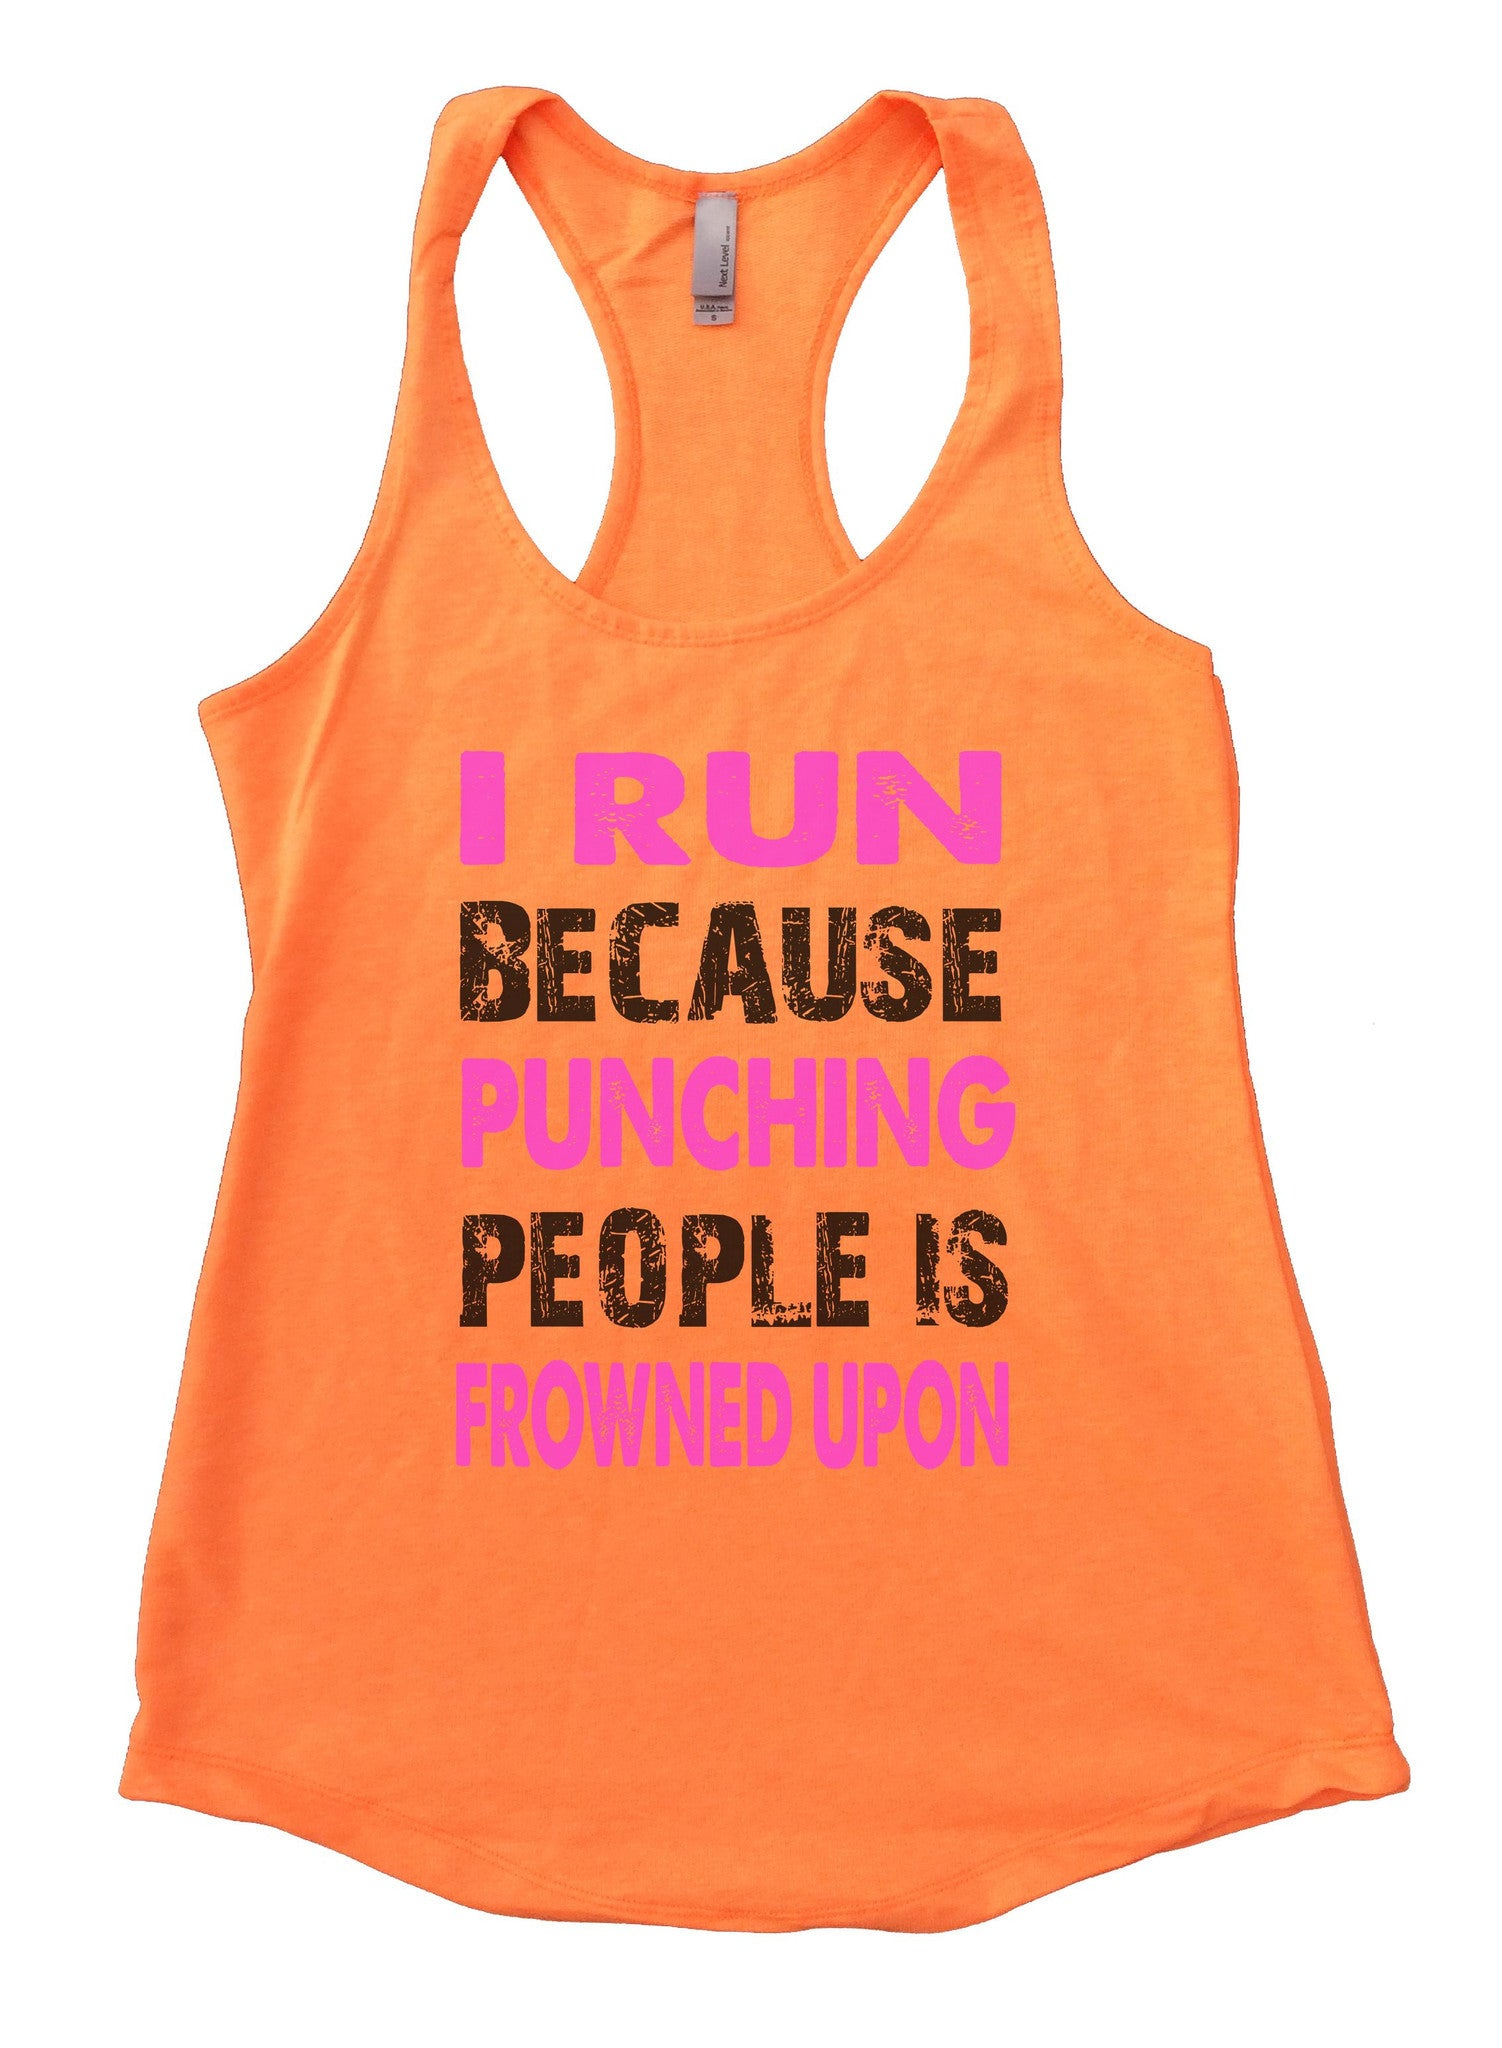 I Run Because Punching People Is Frowned Upon Womens Workout Tank Top F708 - Funny Shirts Tank Tops Burnouts and Triblends  - 6